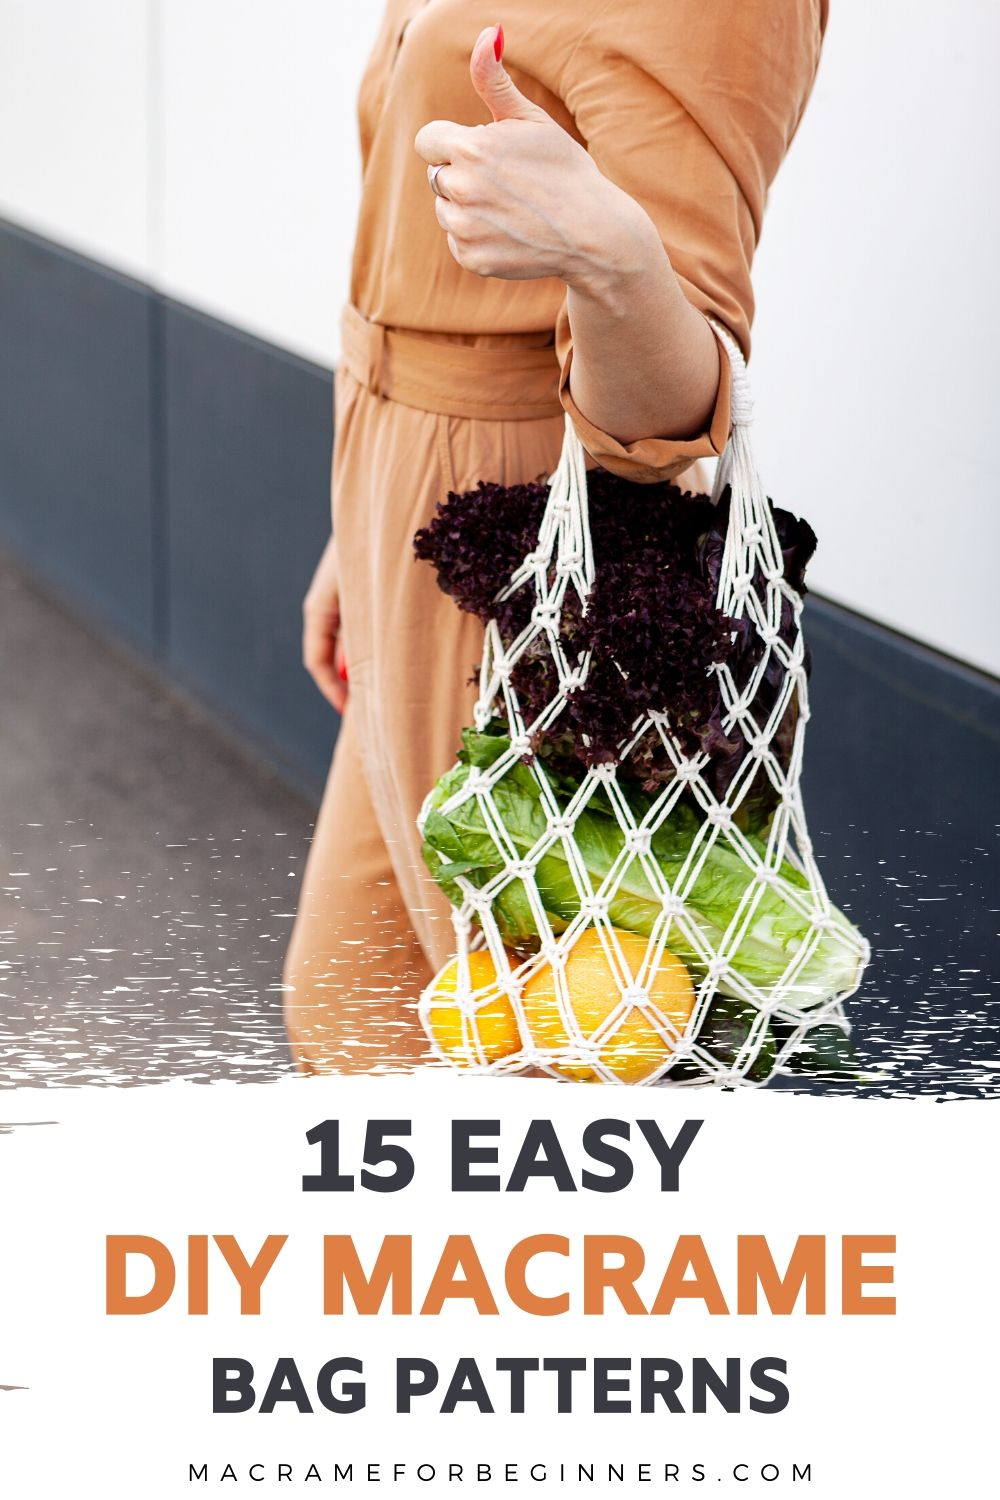 15 Easy DIY Macrame Bags, Purses and Clutches for Beginners